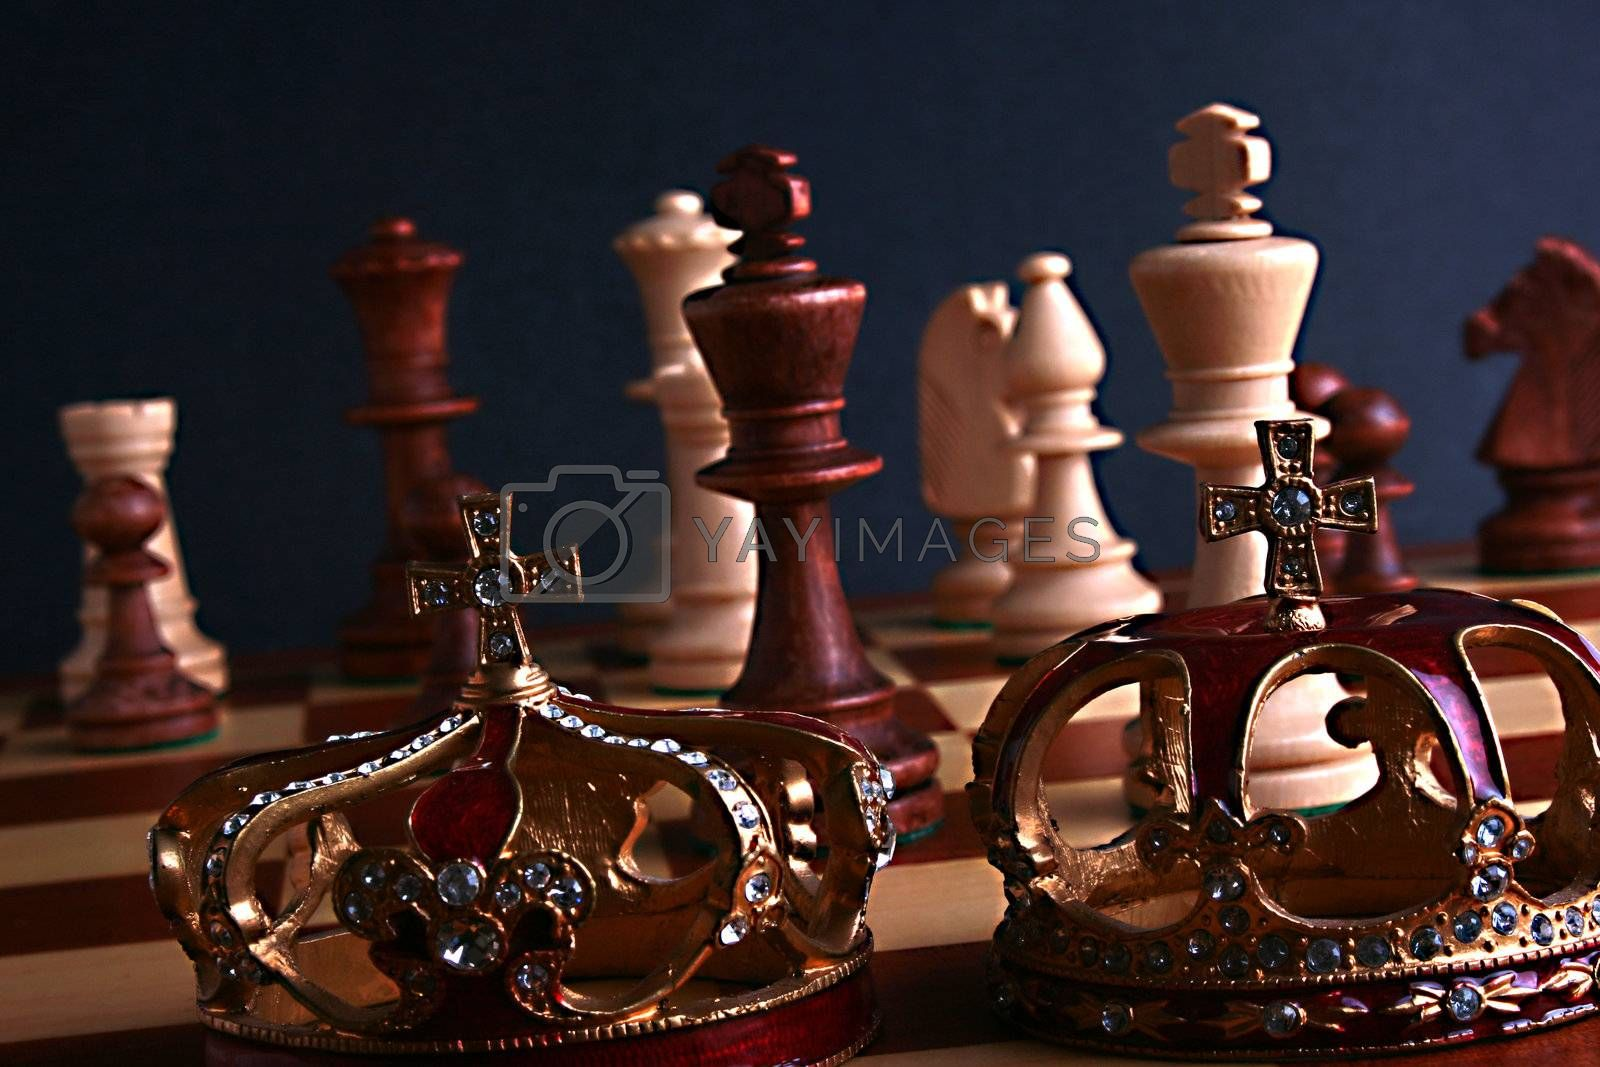 Chessmen on a game board with two crowns.